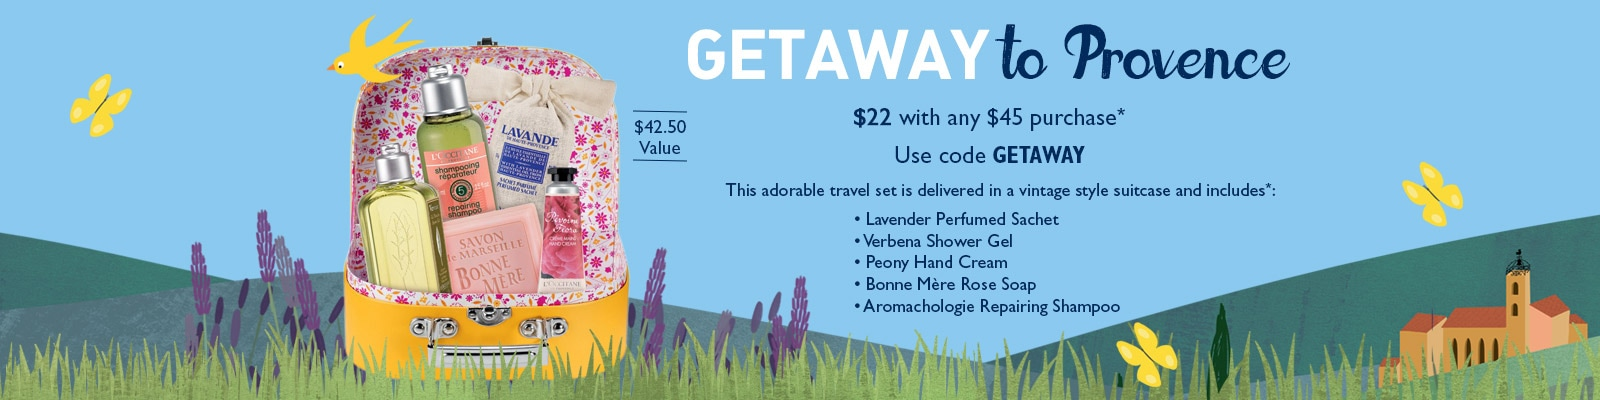 Getaway to Provence $22 with any $45 purchase.  Use code GETAWAY